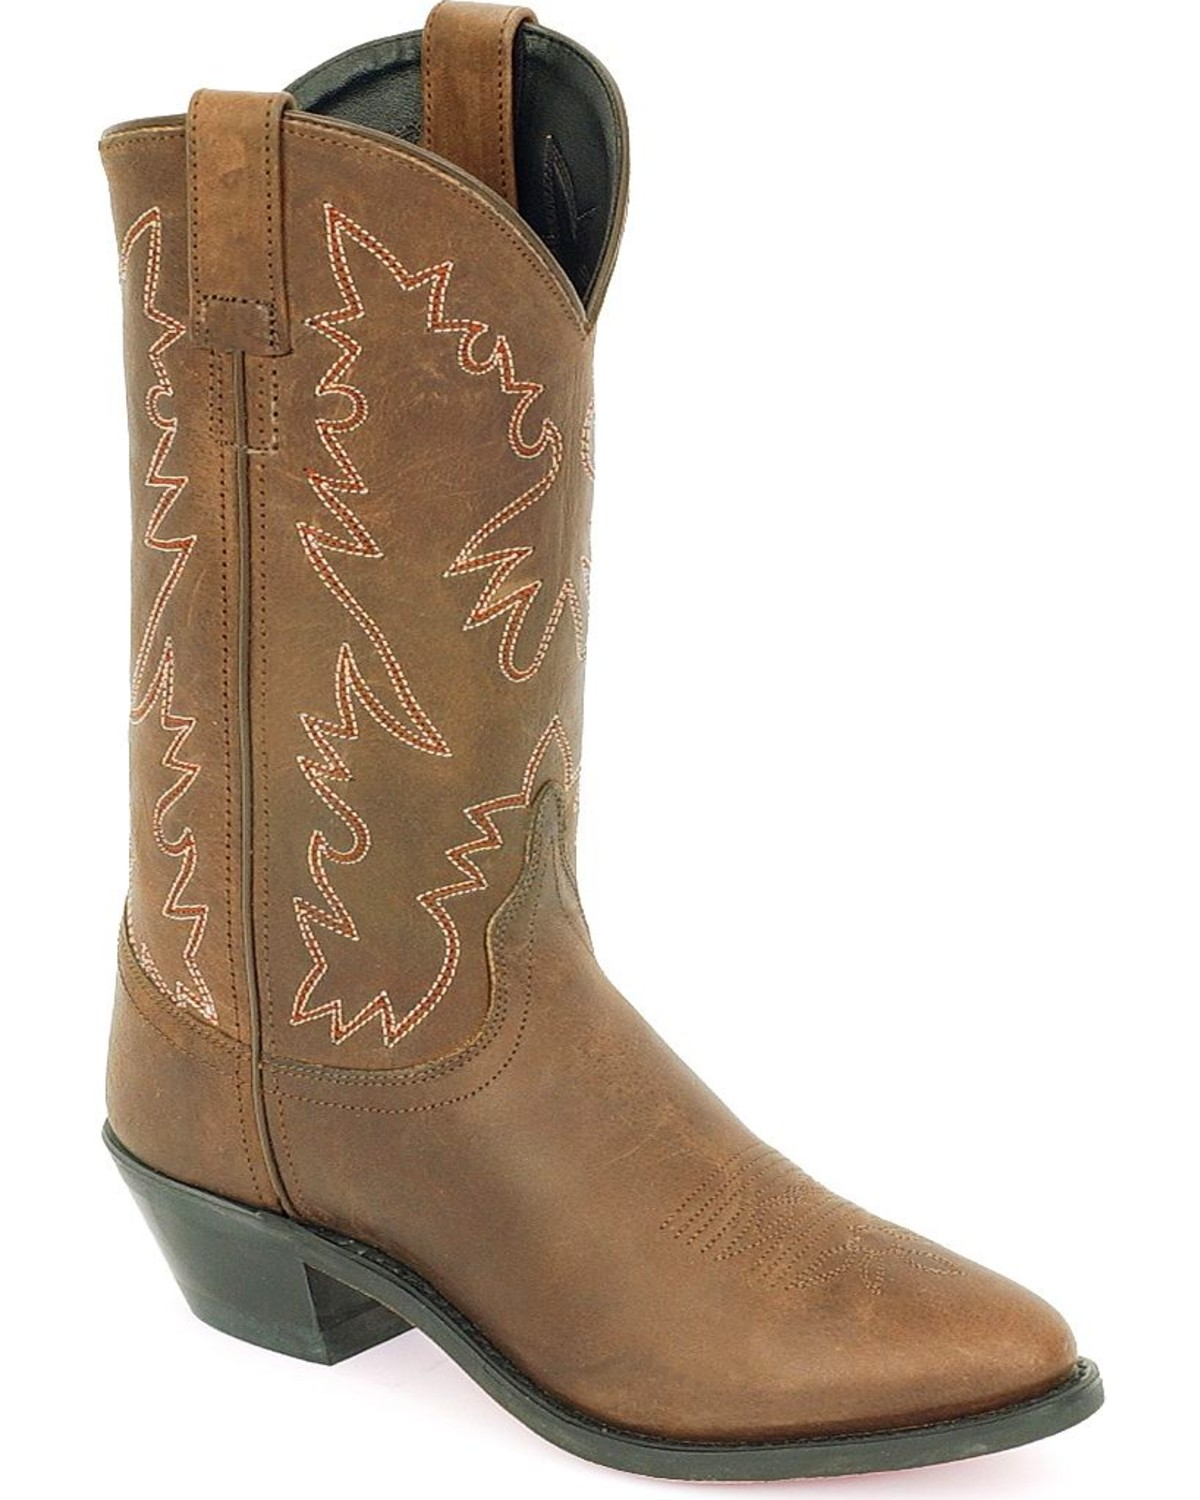 Old West Distressed Leather Cowgirl Boots | Sheplers